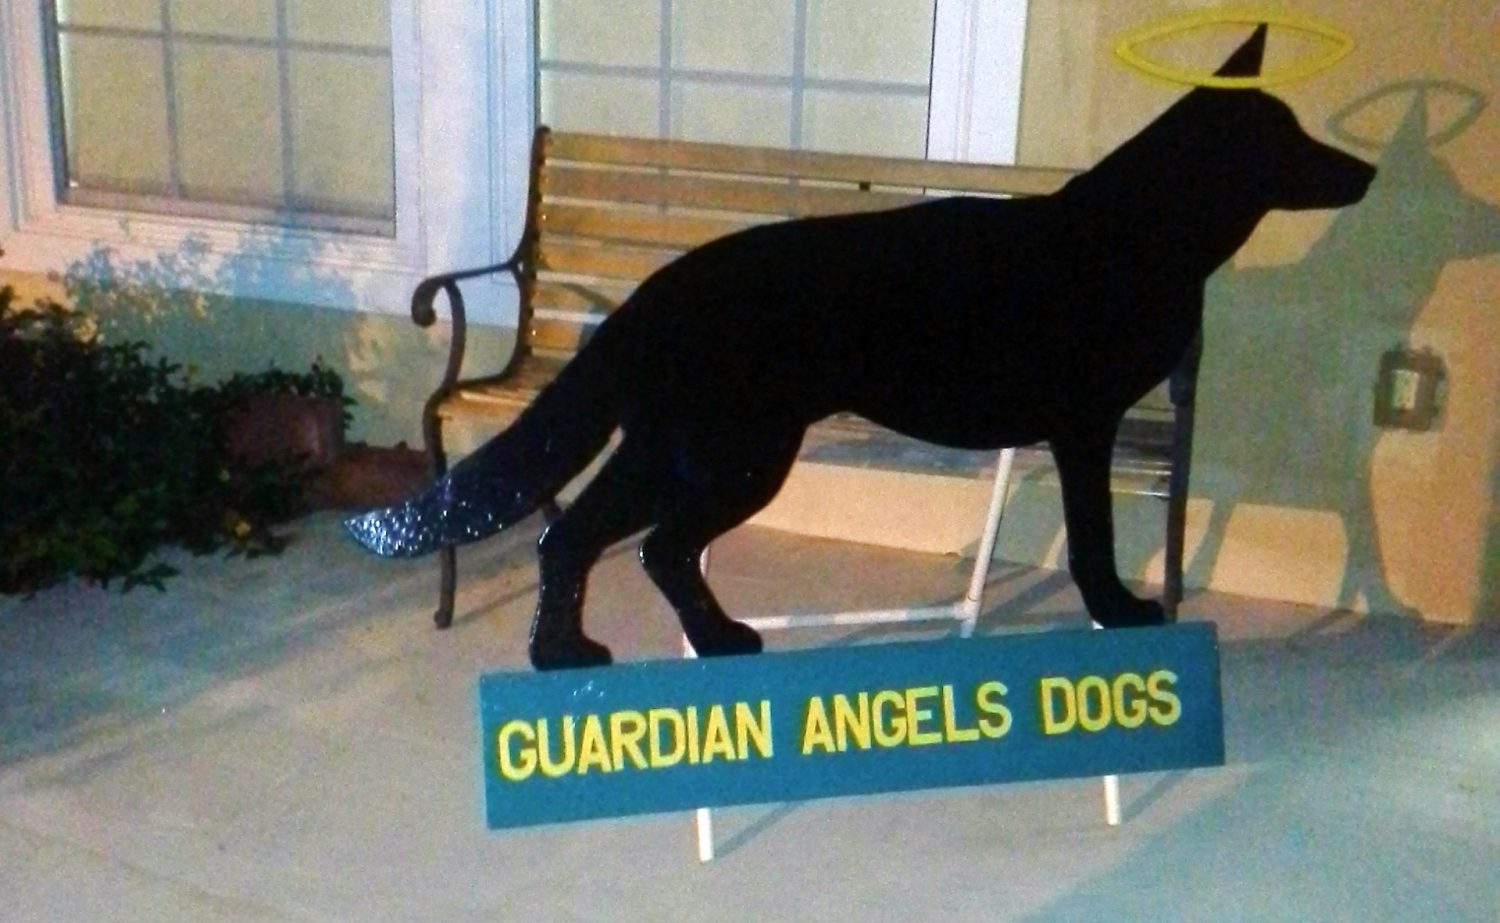 Guardian Angels Dogs is an organization that pairs disabled people with service dogs